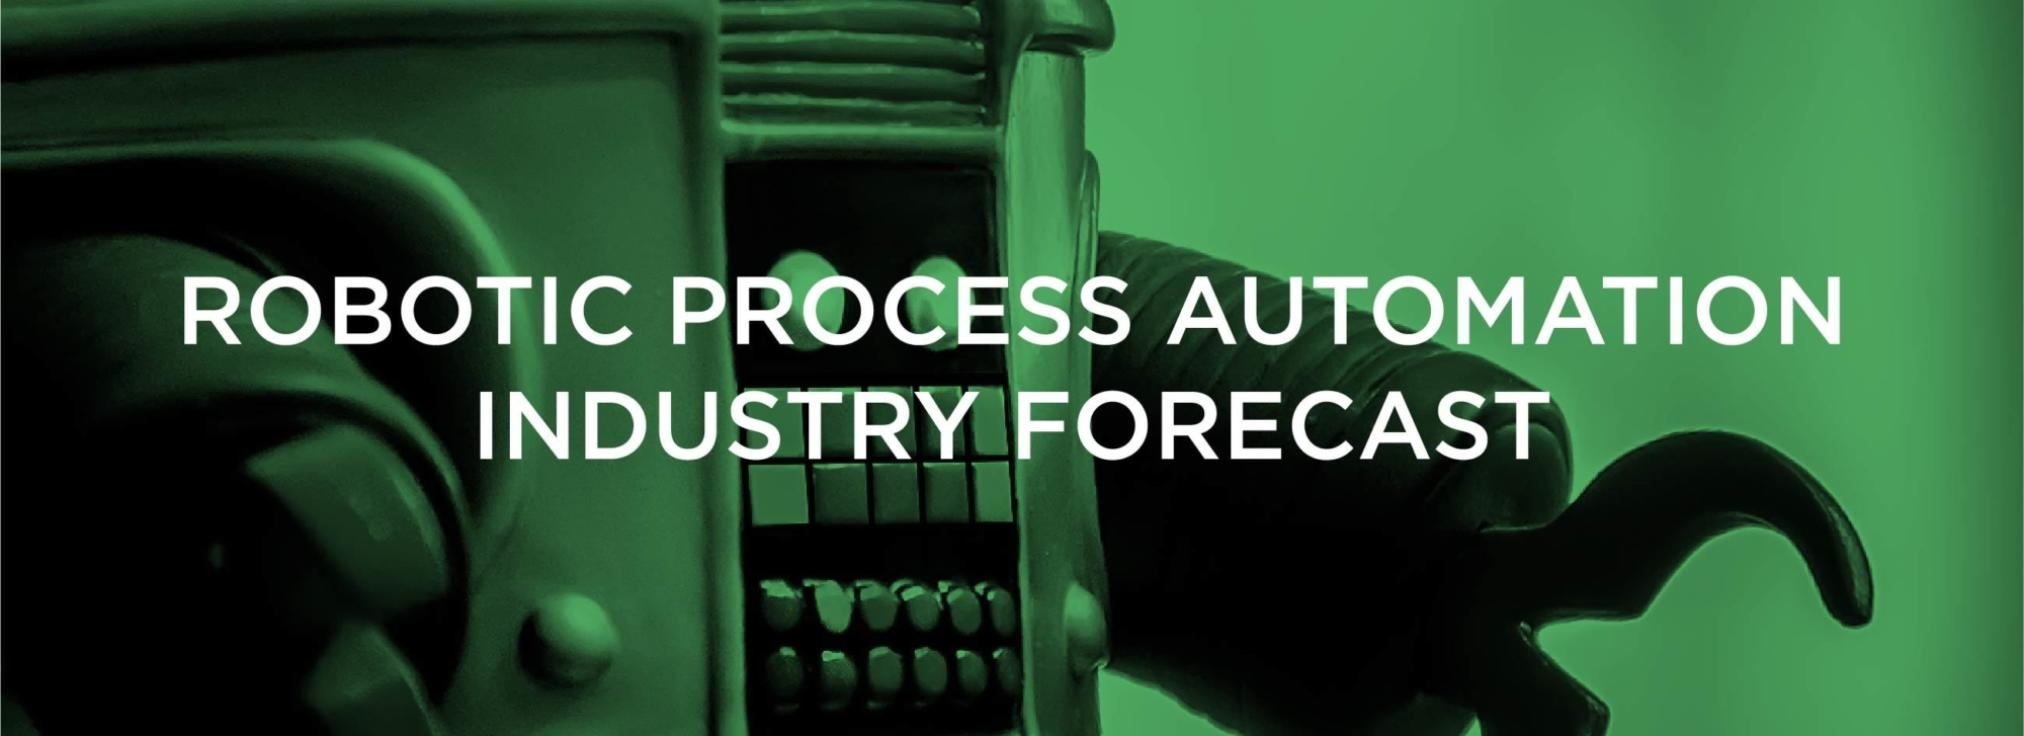 Robotic Process Automation Market Growth to 2024 banner image